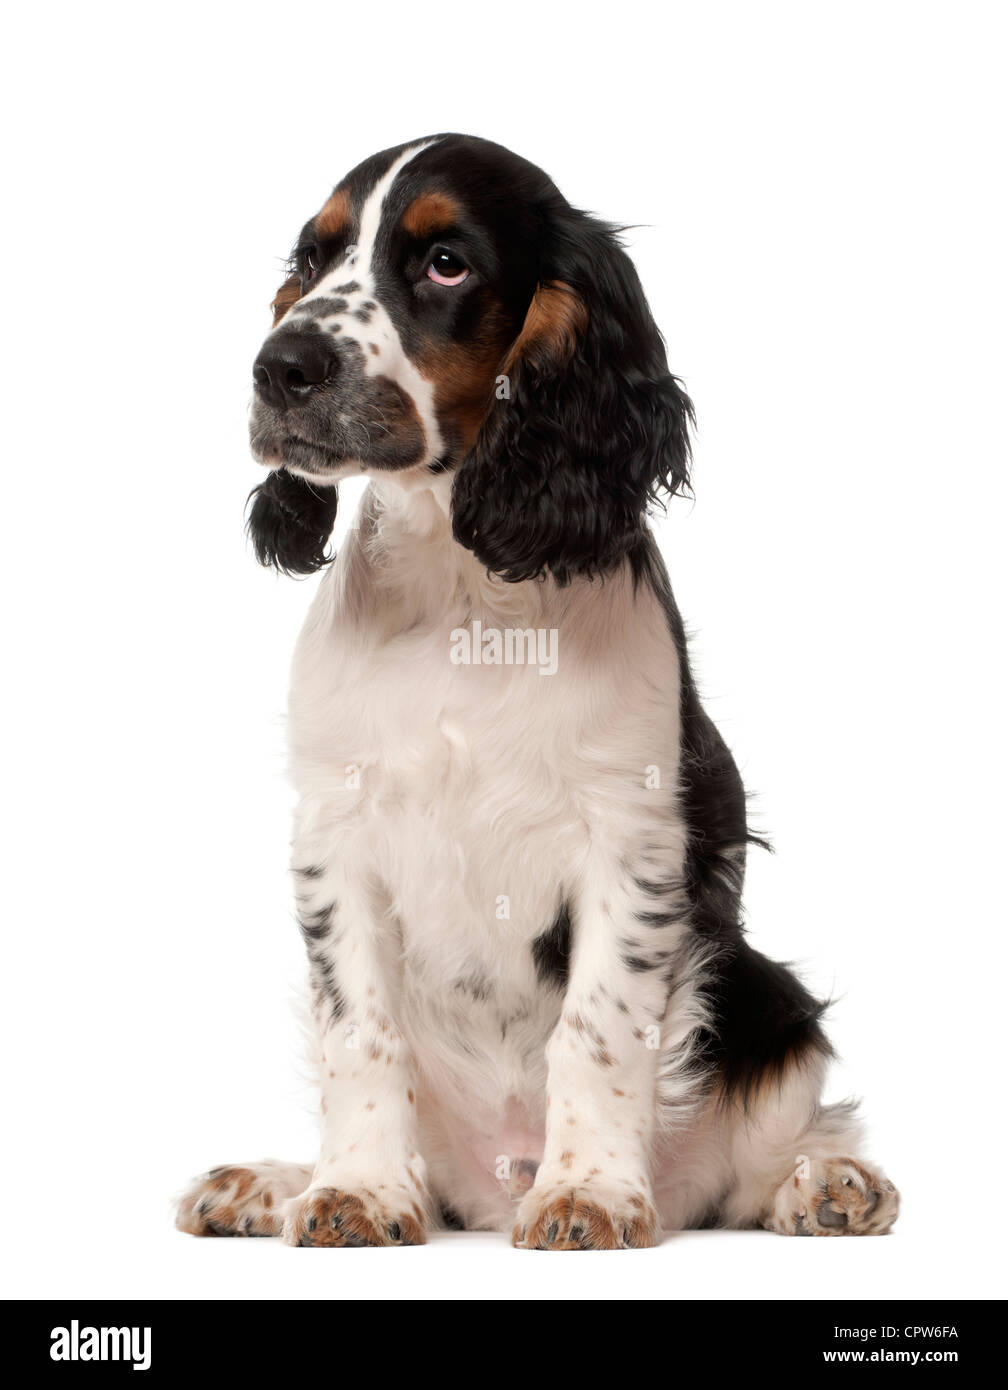 Cocker Spaniel Puppy Black White Stock Photos Cocker Spaniel Puppy